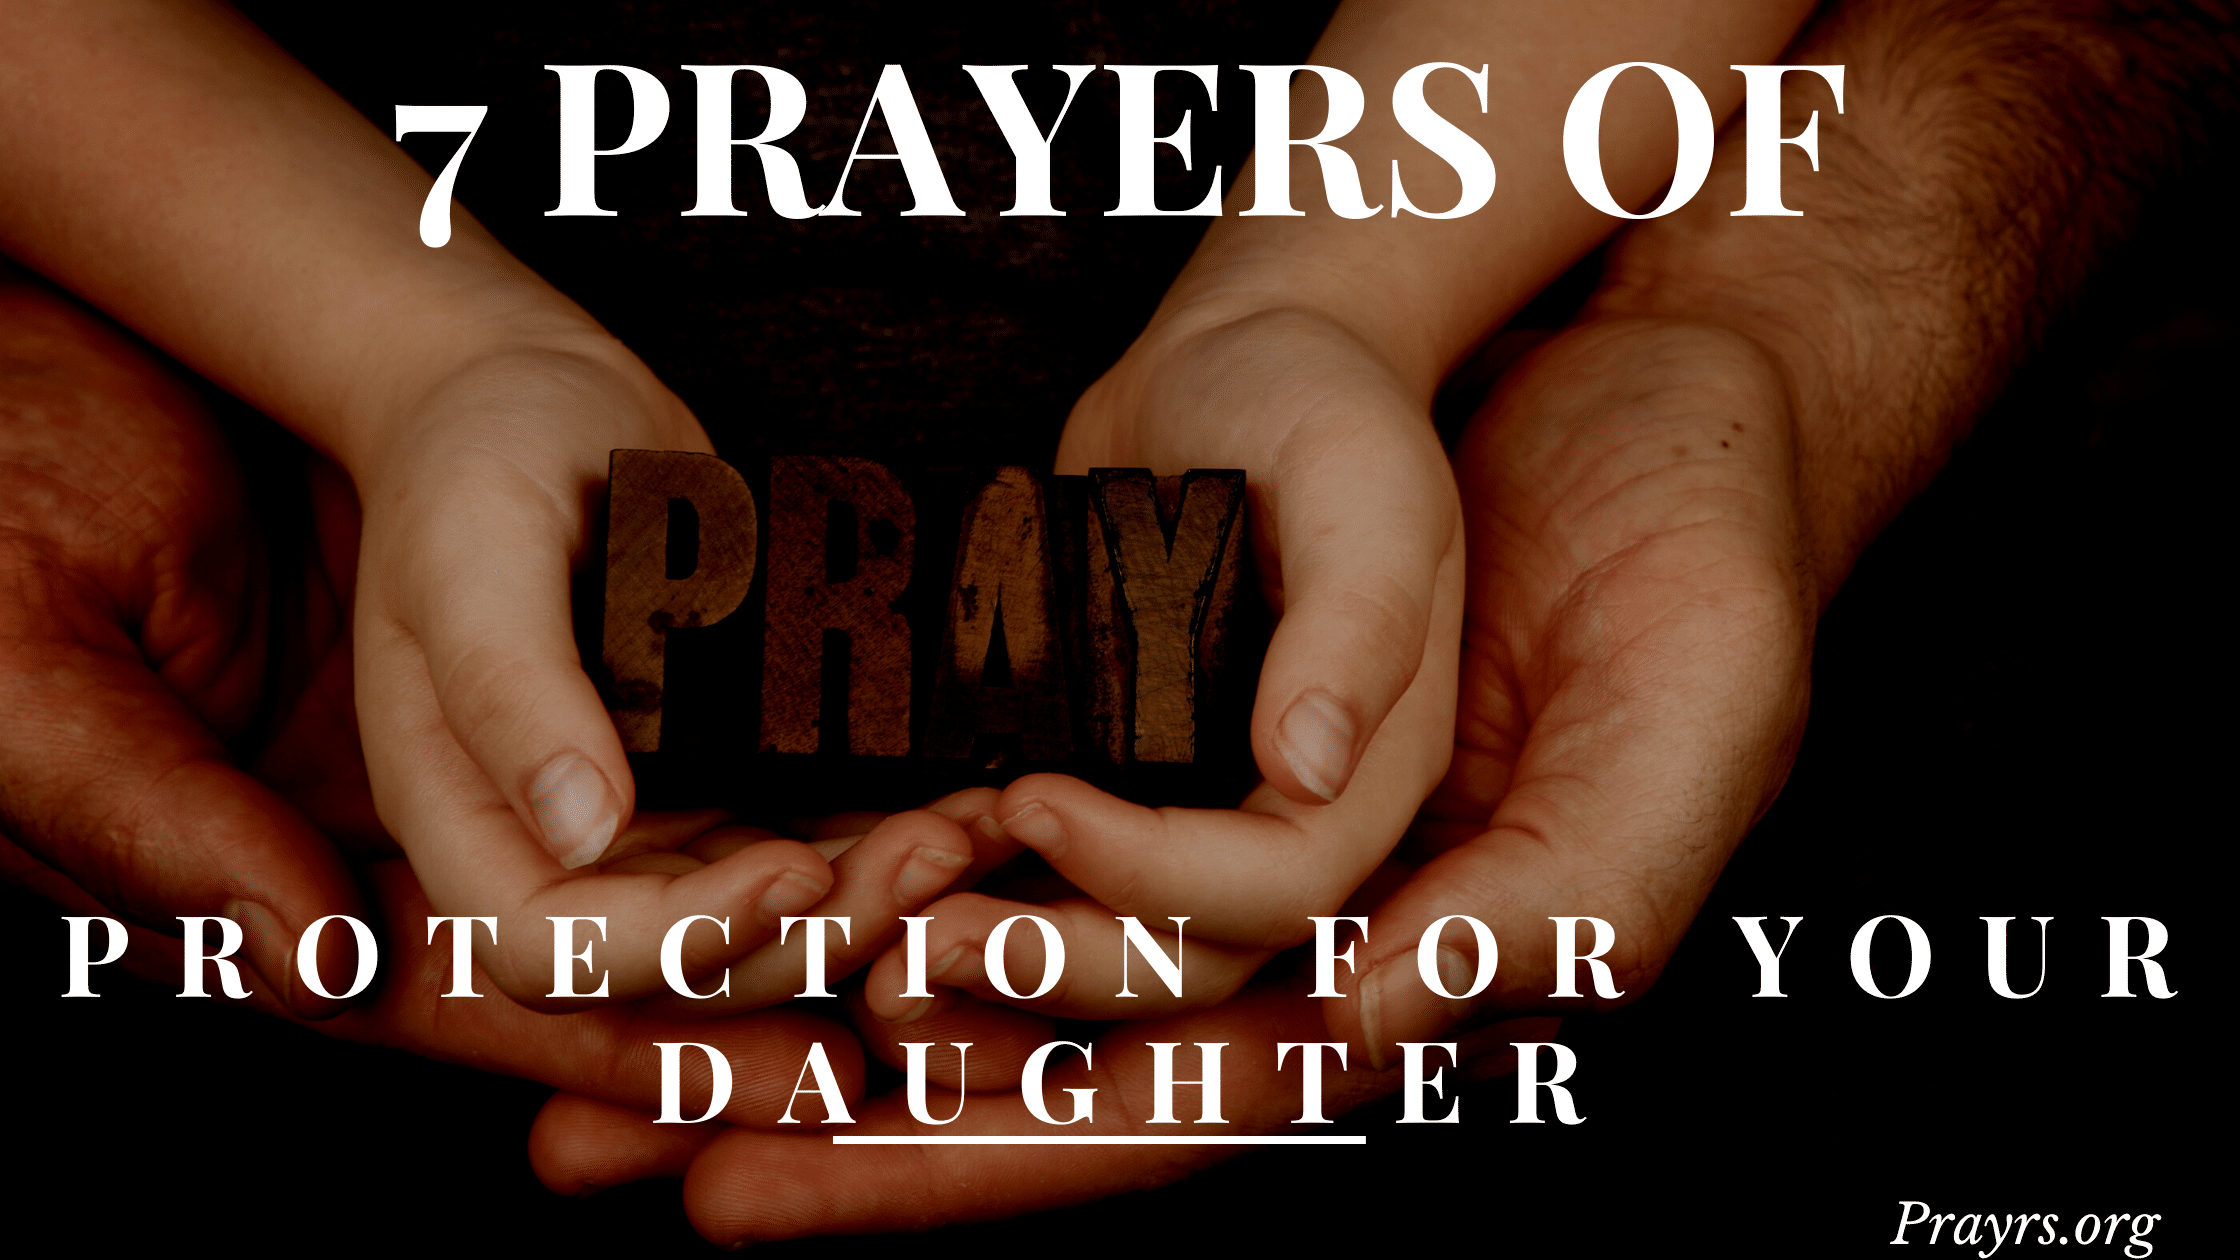 Prayers of Protection for my Daughter